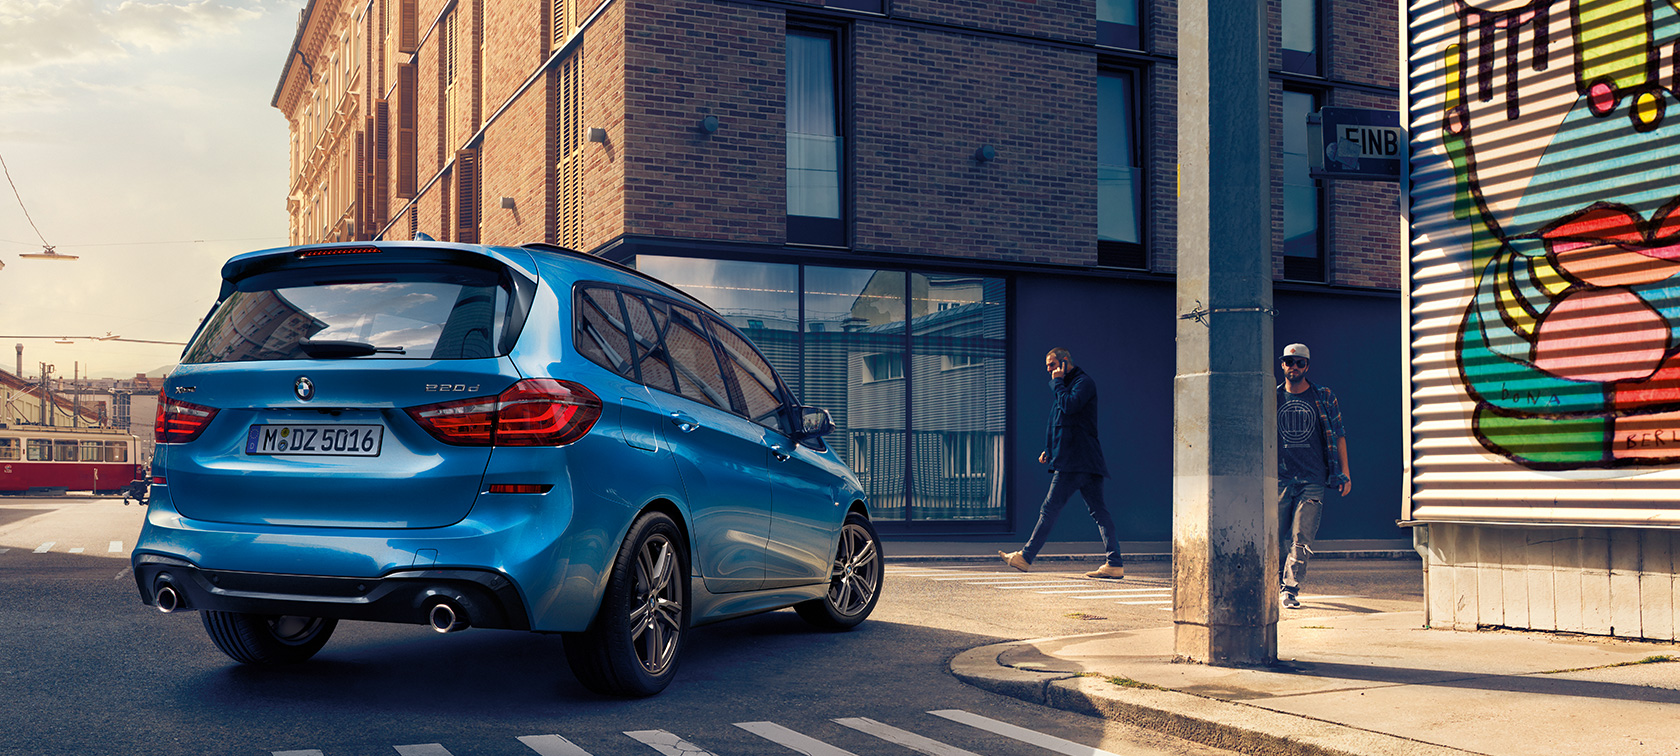 BMW 2 Serie Gran Tourer F46 Facelift 2018 Estoril Blau metallic bovenaanzicht parkerend